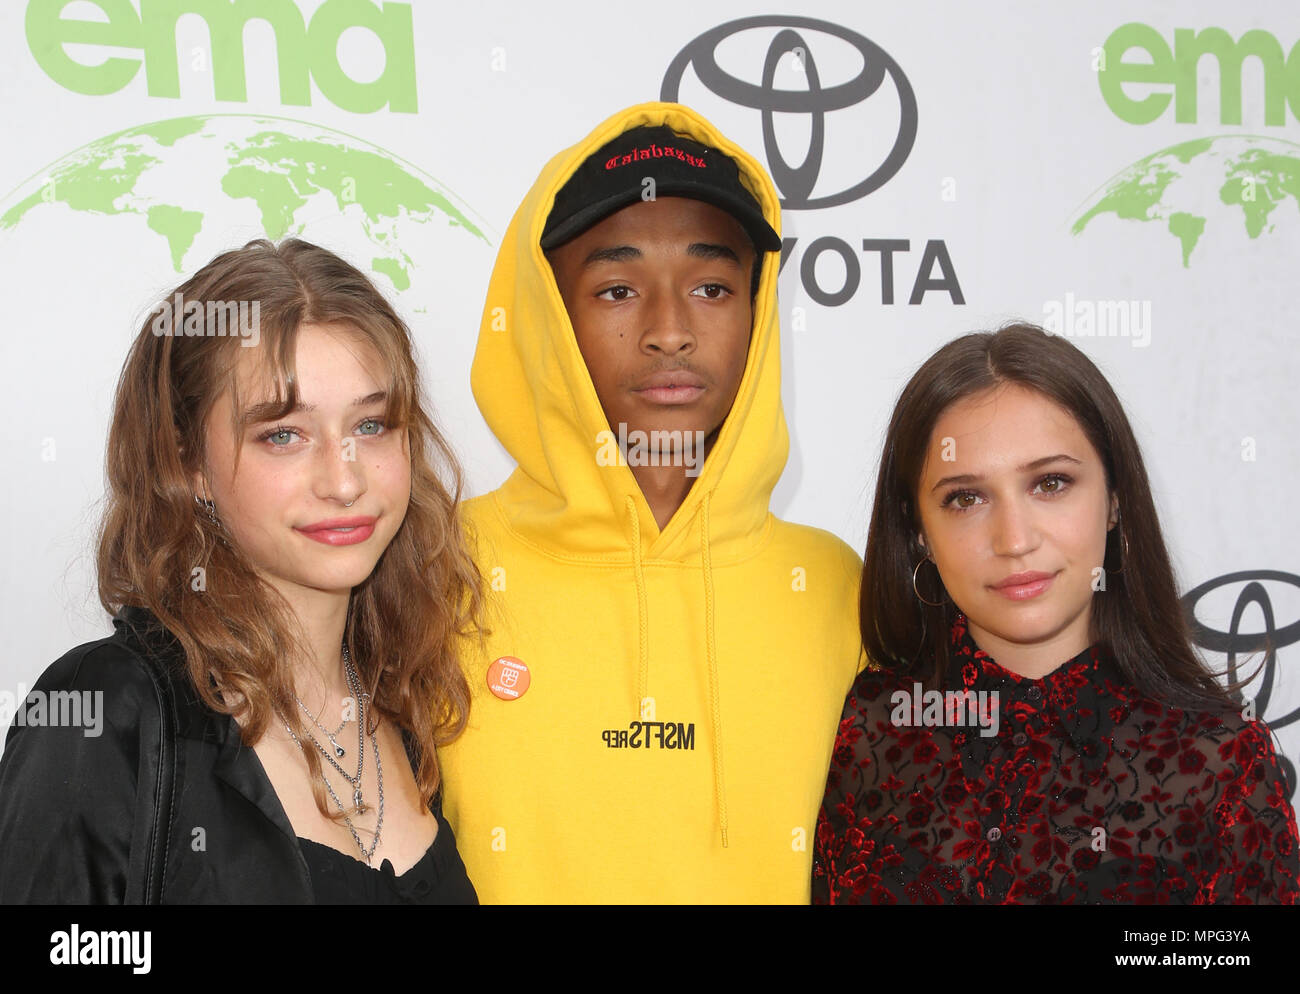 Beverly Hills, Ca. 22nd May, 2018. Jaden Smith, Odessa Adlon, Gideon Adlon, at the 28th Annual EMA Awards at Montage Beverly Hills, California on May 22, 2018. Credit: Faye Sadou/Media Punch/Alamy Live News - Stock Image